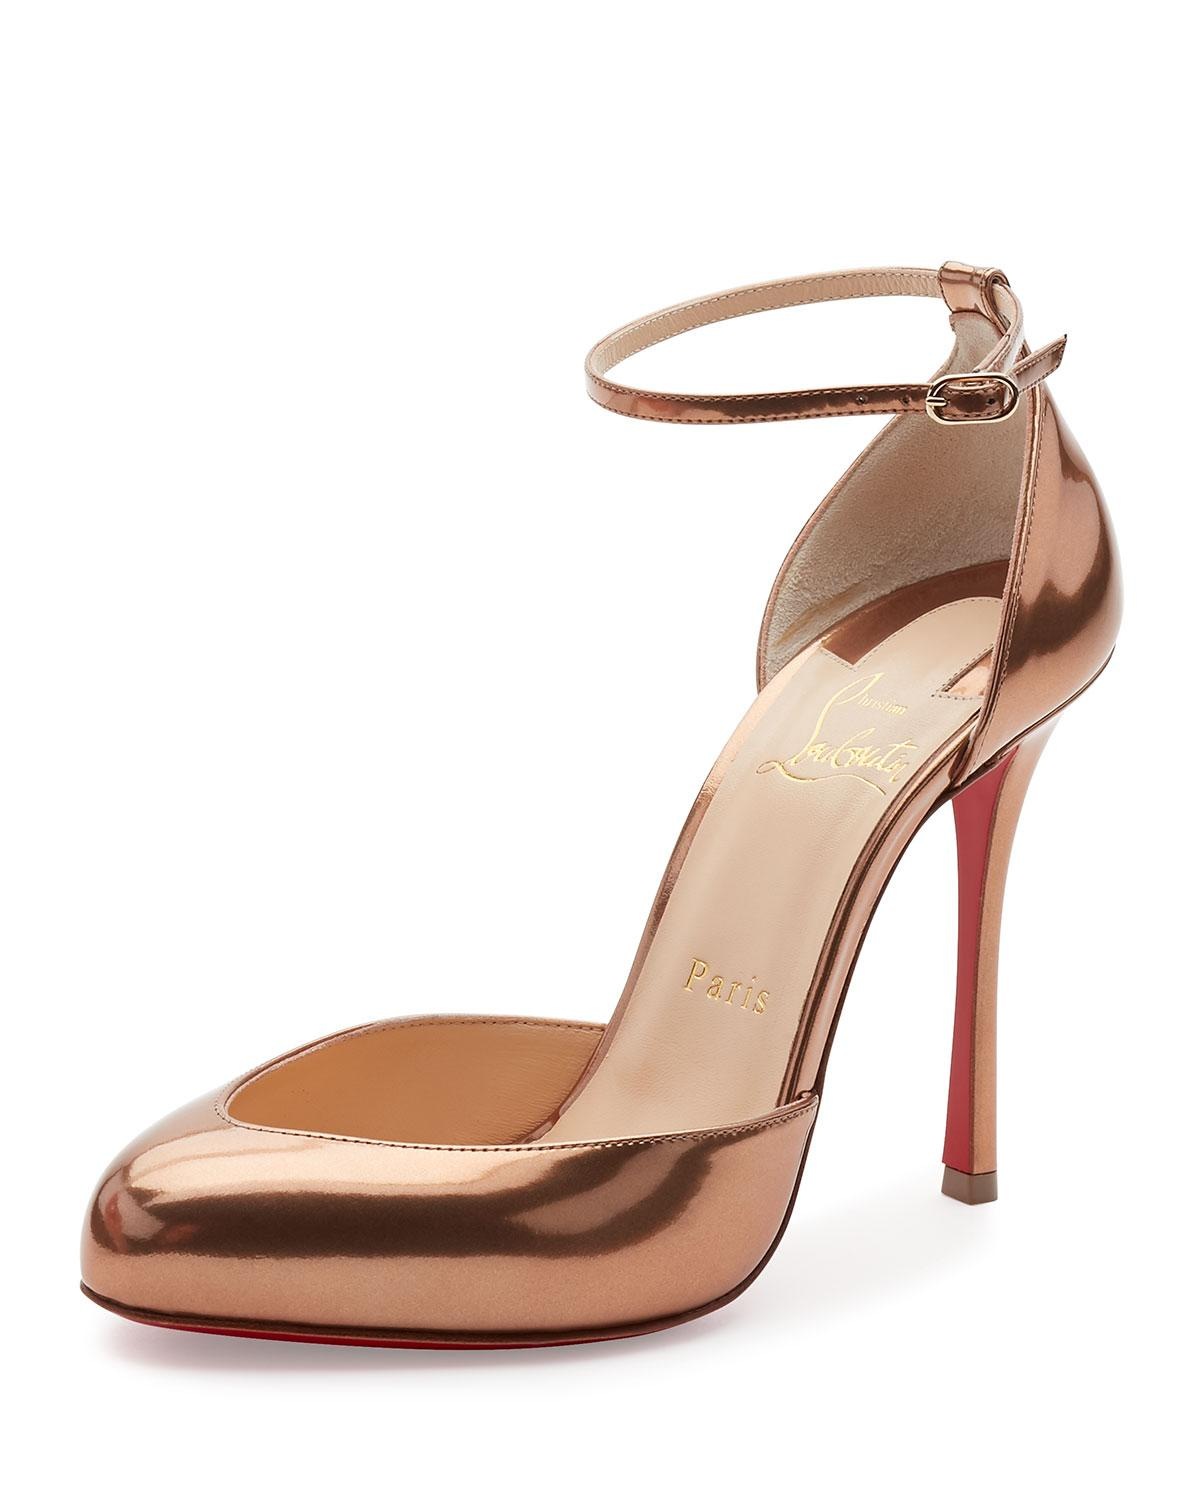 119f2657faf0 Lyst - Christian Louboutin Dollyla Patent 100mm Red Sole Pump in Natural